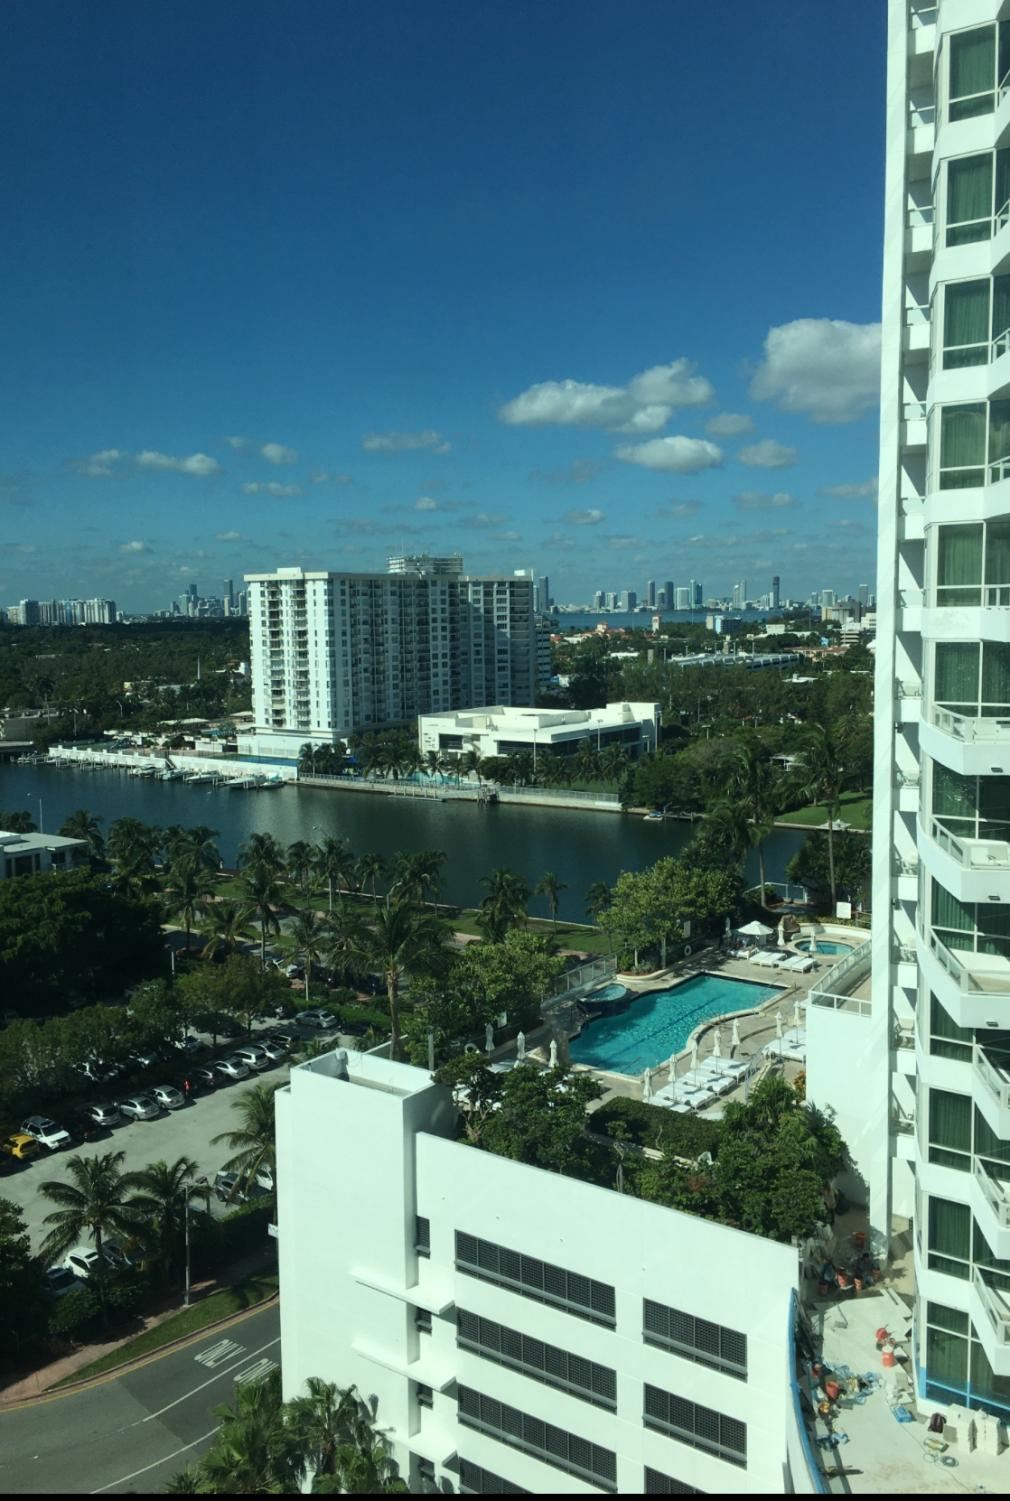 A sneak peak of the amazing and wonderful views in Miami!!